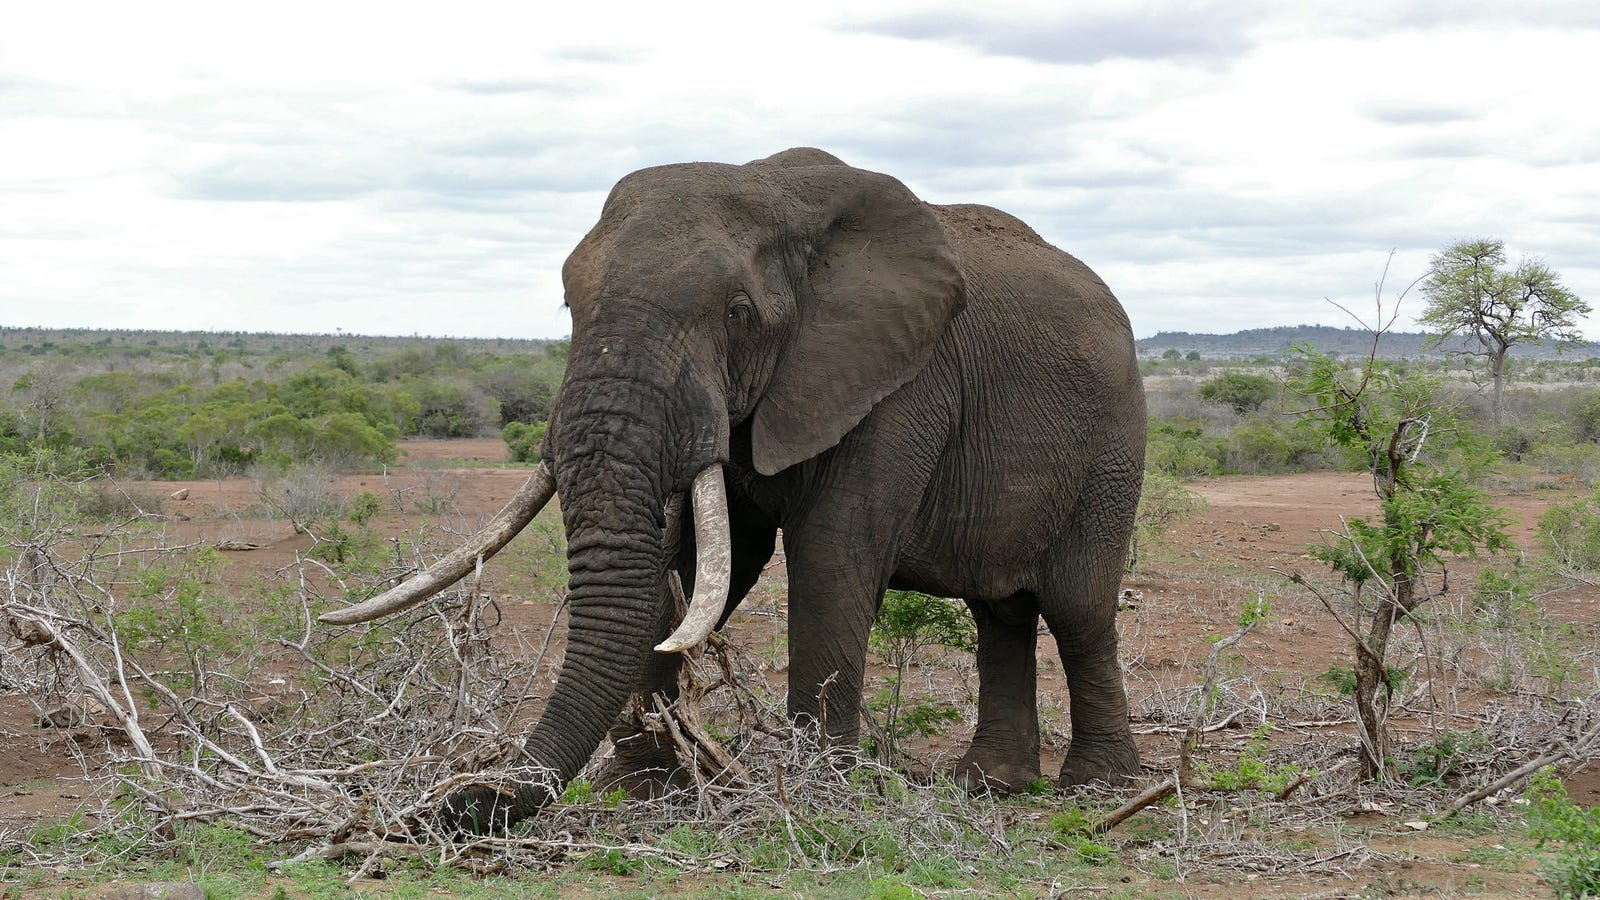 When Will the Great Human-Elephant War End?